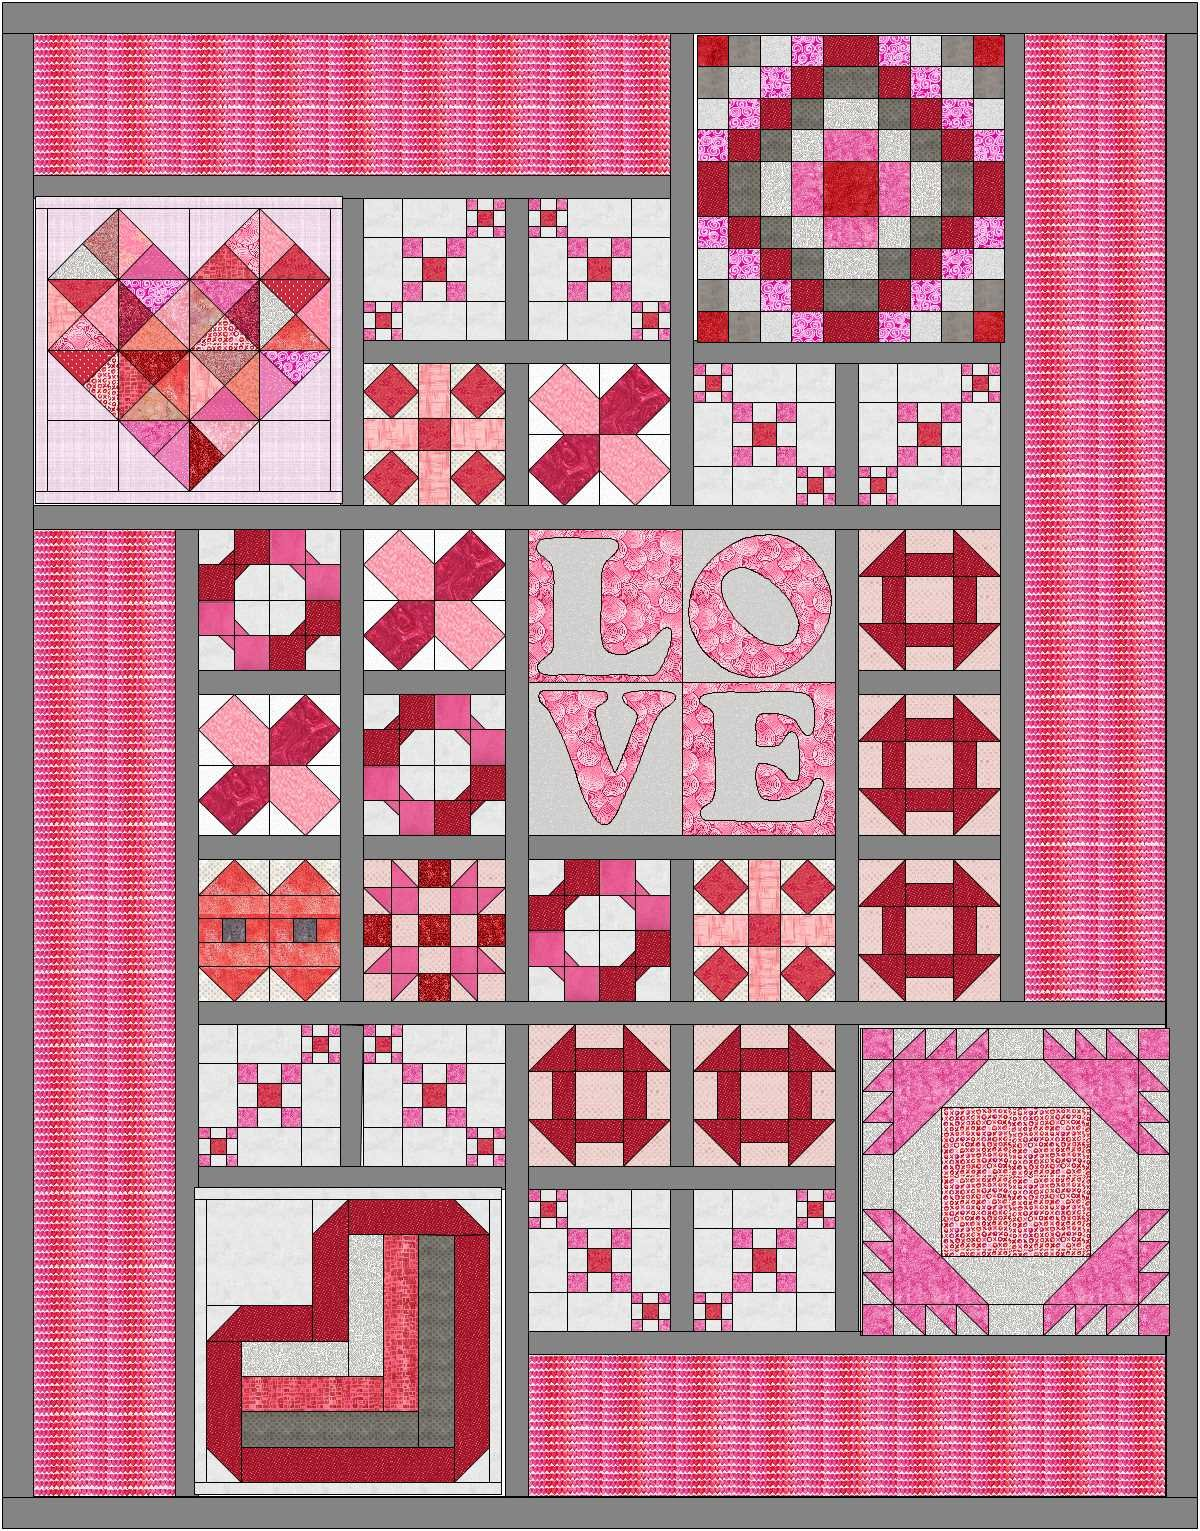 tHIS Love Wholesale Reproducible Pattern Series